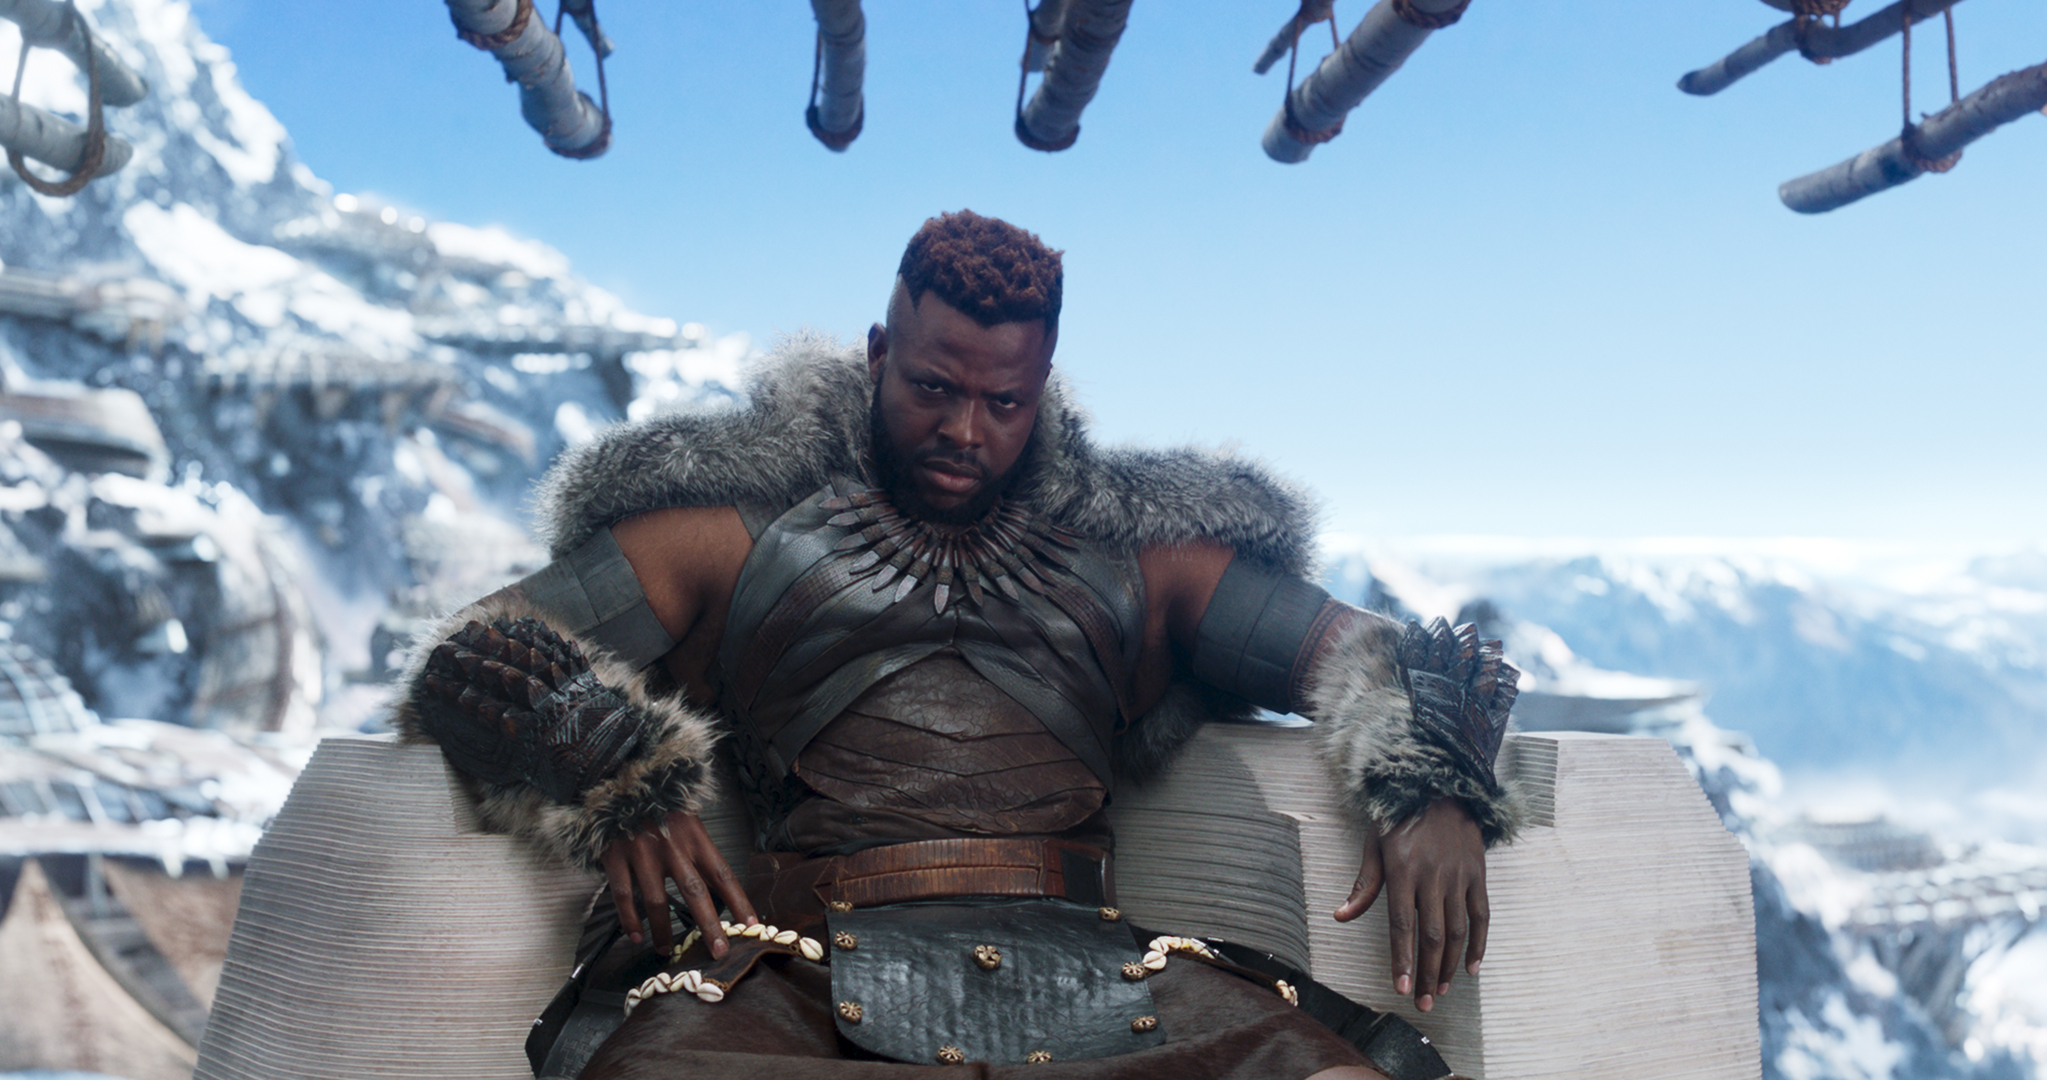 Black Panther Antagonists, Andy Serkis, Winston Duke, Black Panther